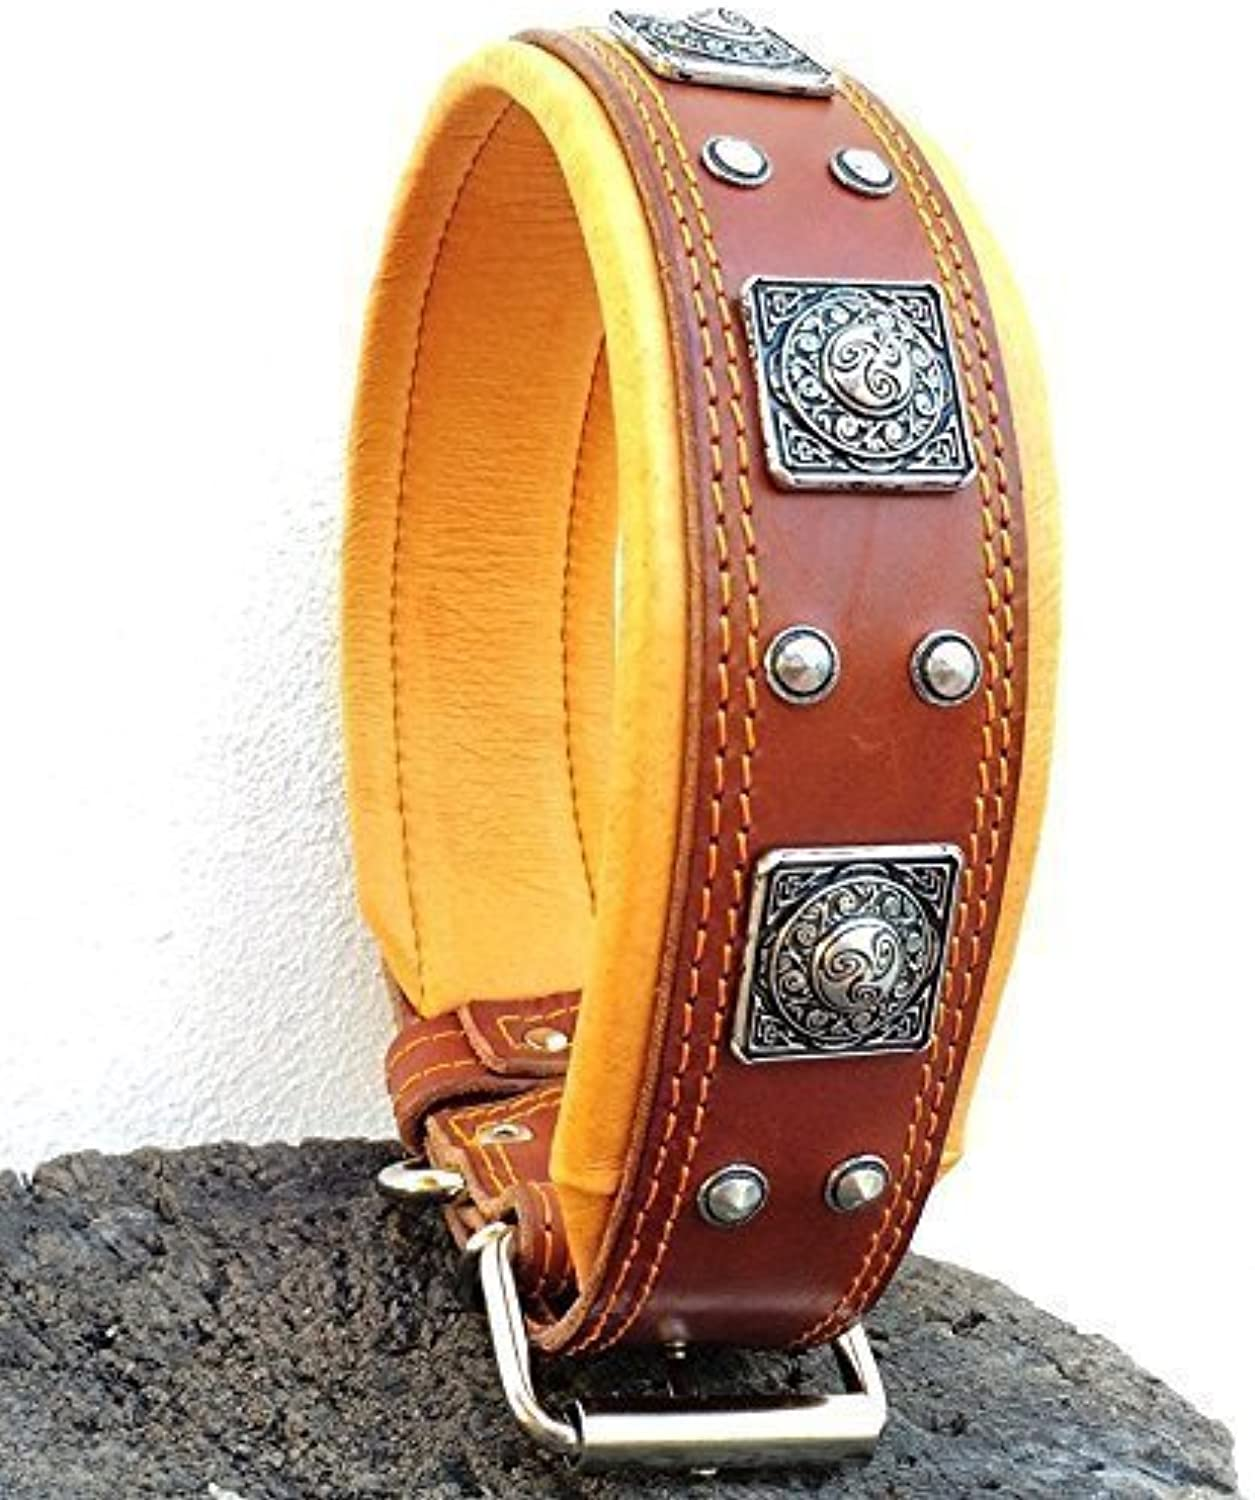 Bestia  EROS brown leather dog collar, Large breeds, cane corso, redtweiler, Boxer, Bullmastiff, Dogo, Quality dog collar, 100% leather, studded, M XXL size, 2.5 inch wide. padded. Made in Europe